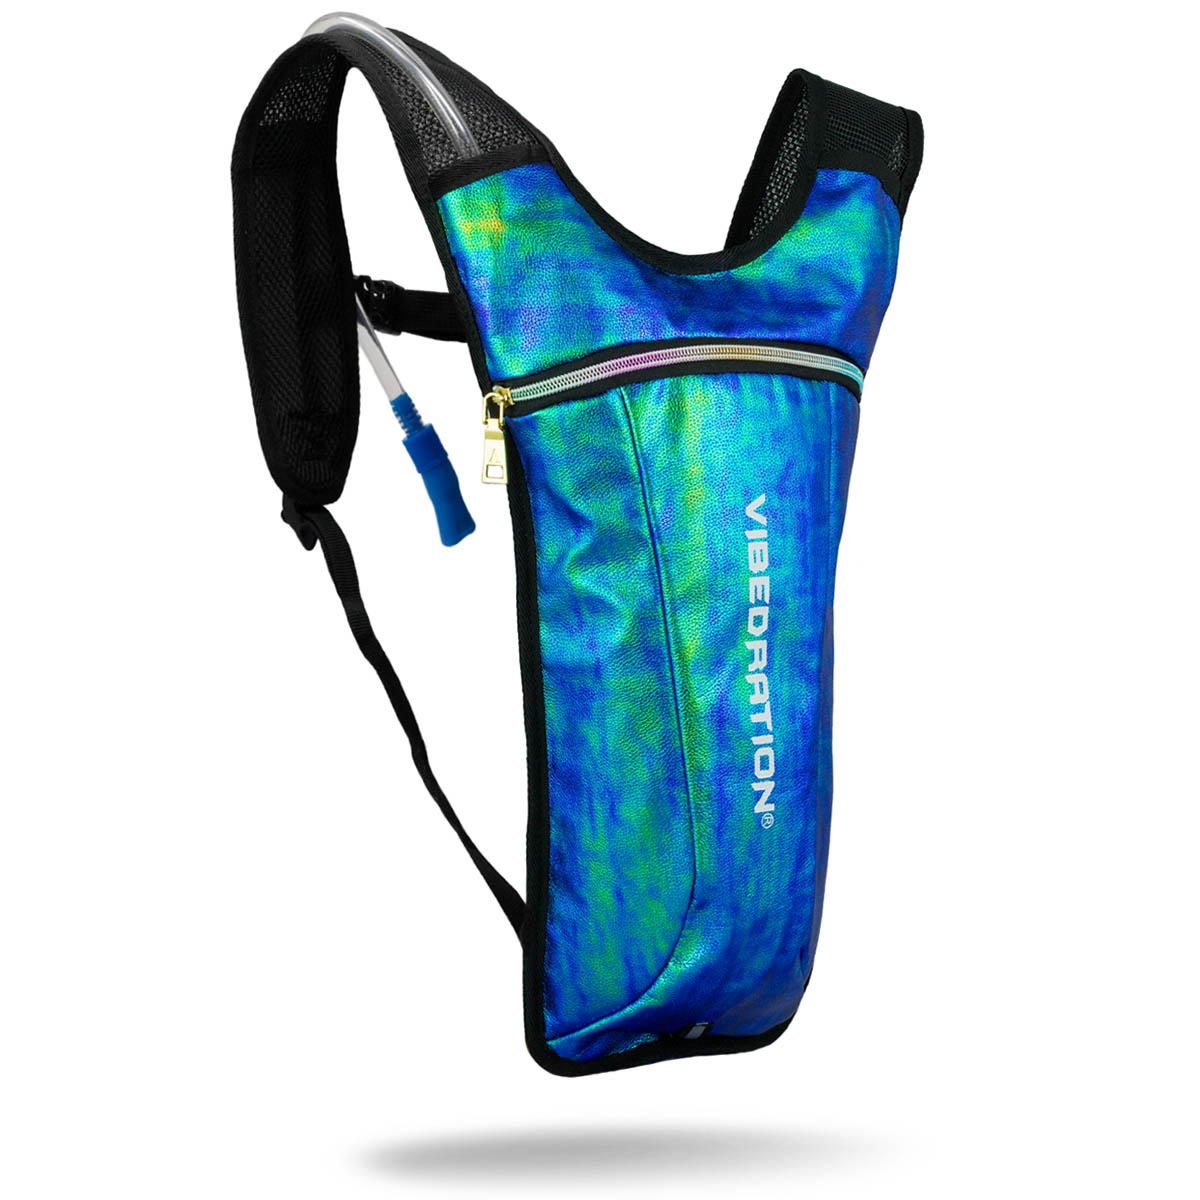 Mermaid hydration pack for raves with two liter water bladder